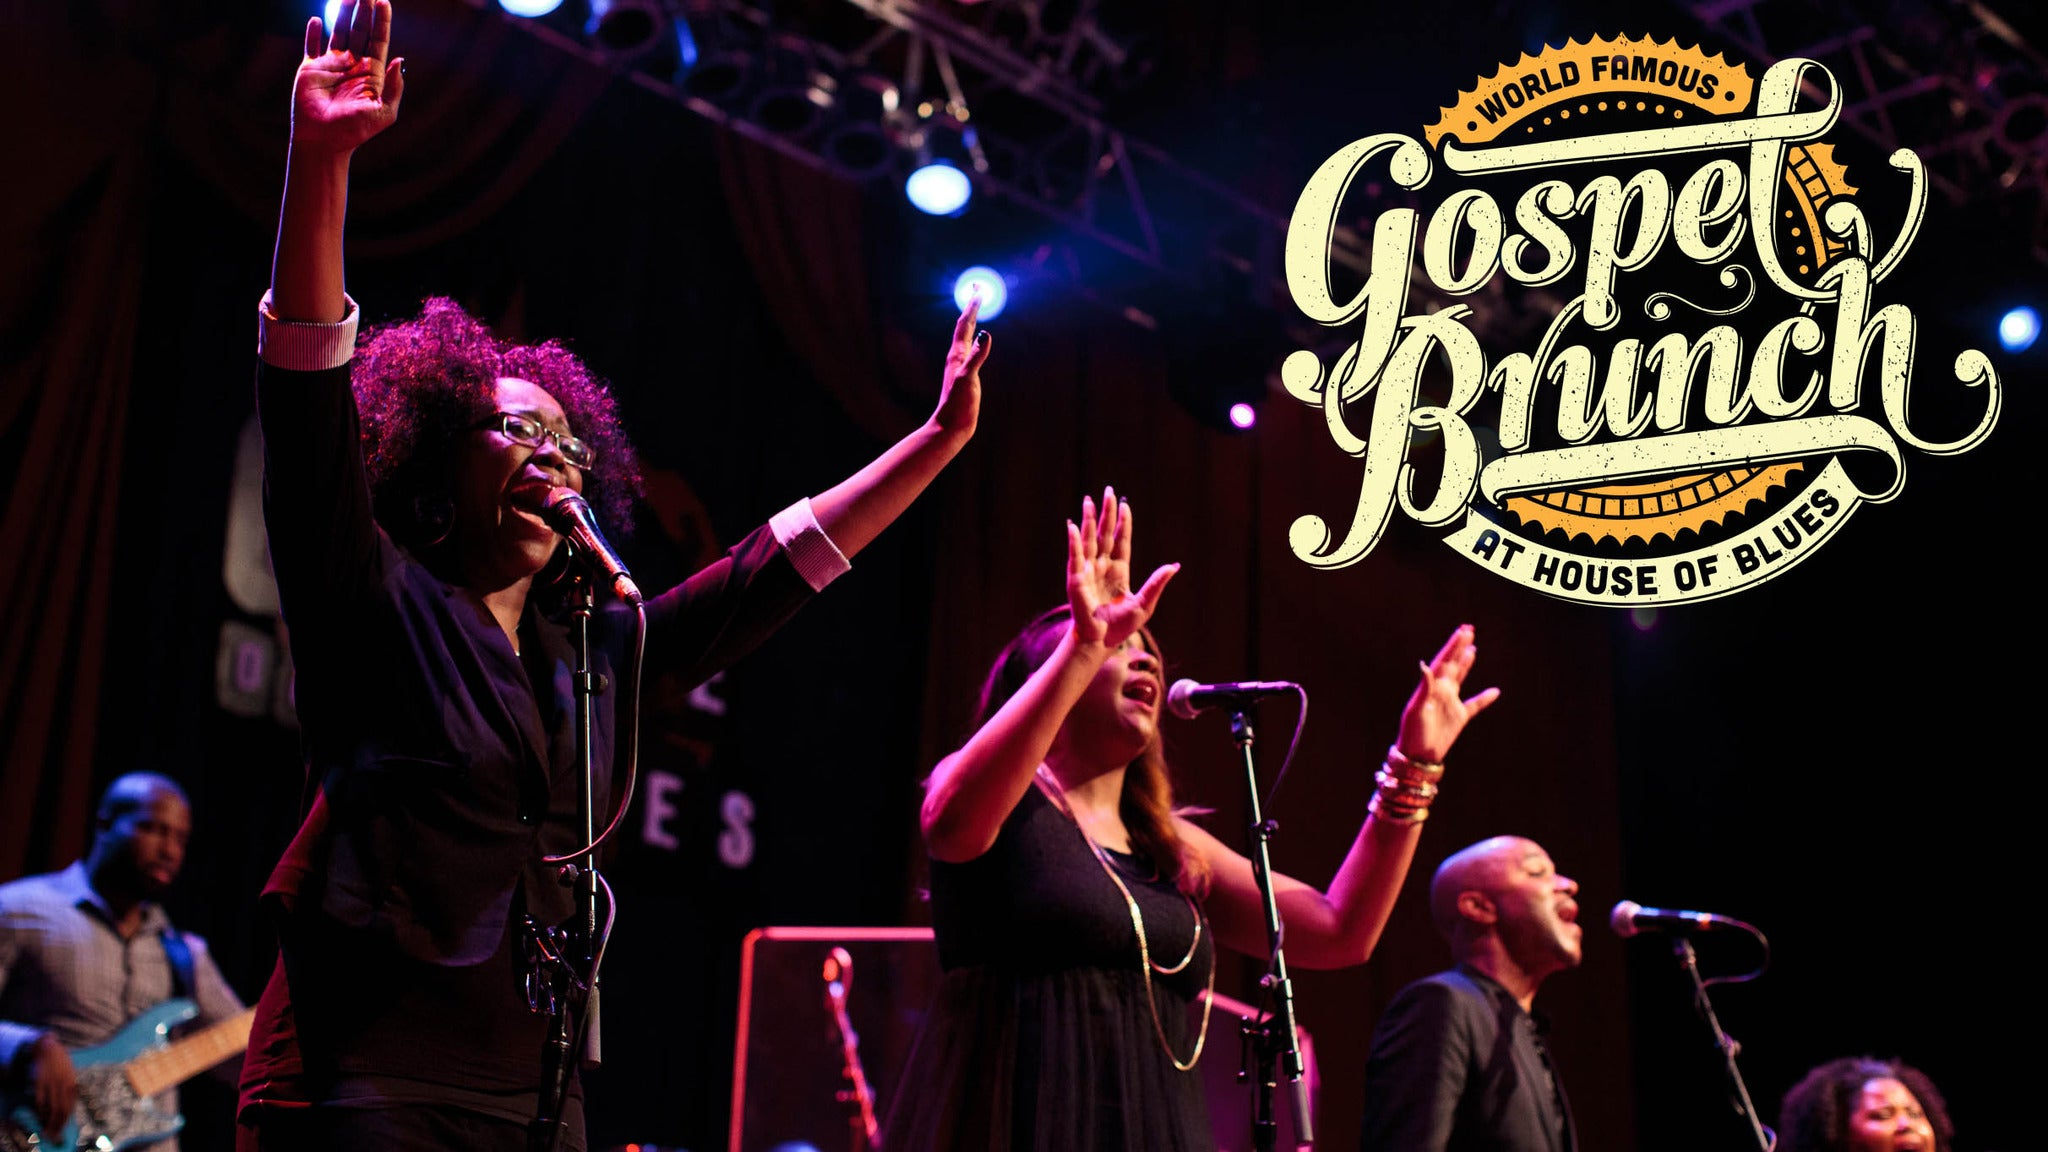 World Famous Gospel Brunch at House of Blues (CHI) - Chicago, IL 60654